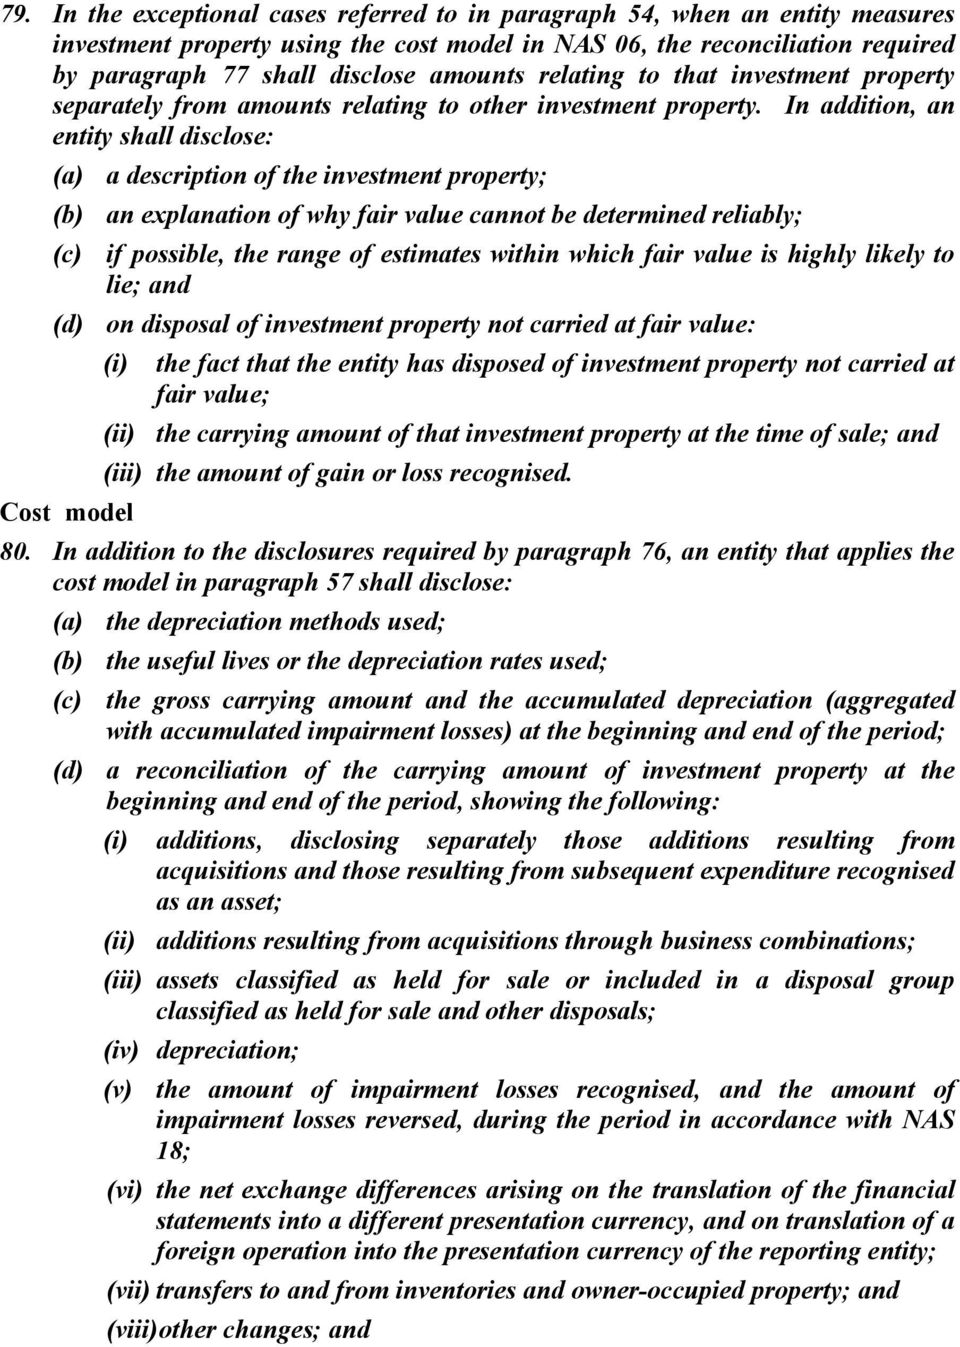 In addition, an entity shall disclose: (a) a description of the investment property; (b) an explanation of why fair value cannot be determined reliably; (c) if possible, the range of estimates within